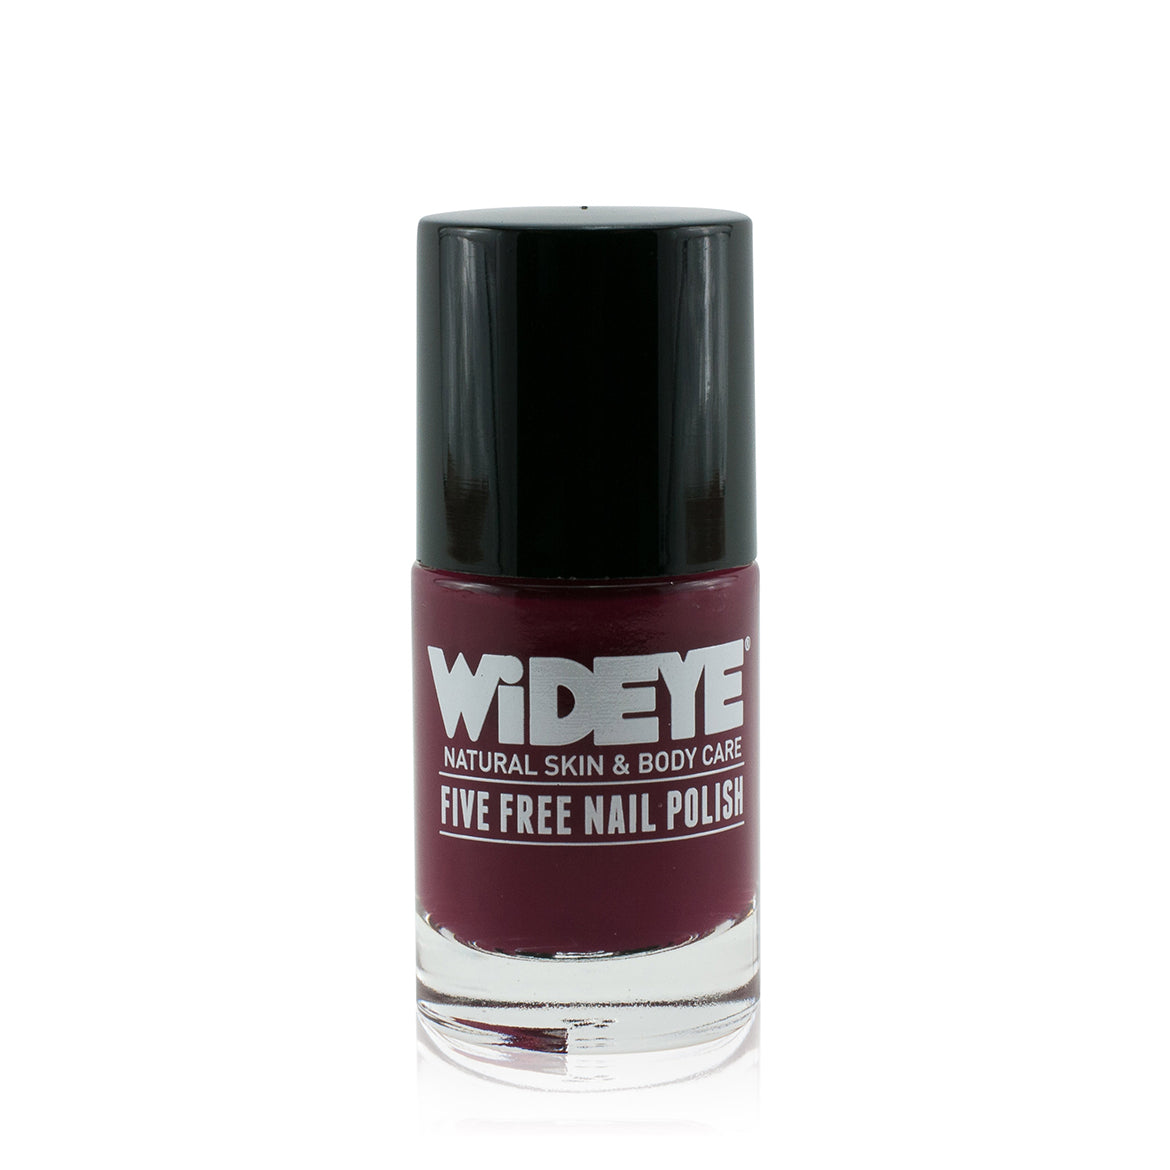 Raspberry red nail varnish in glass bottle by WiDEYE